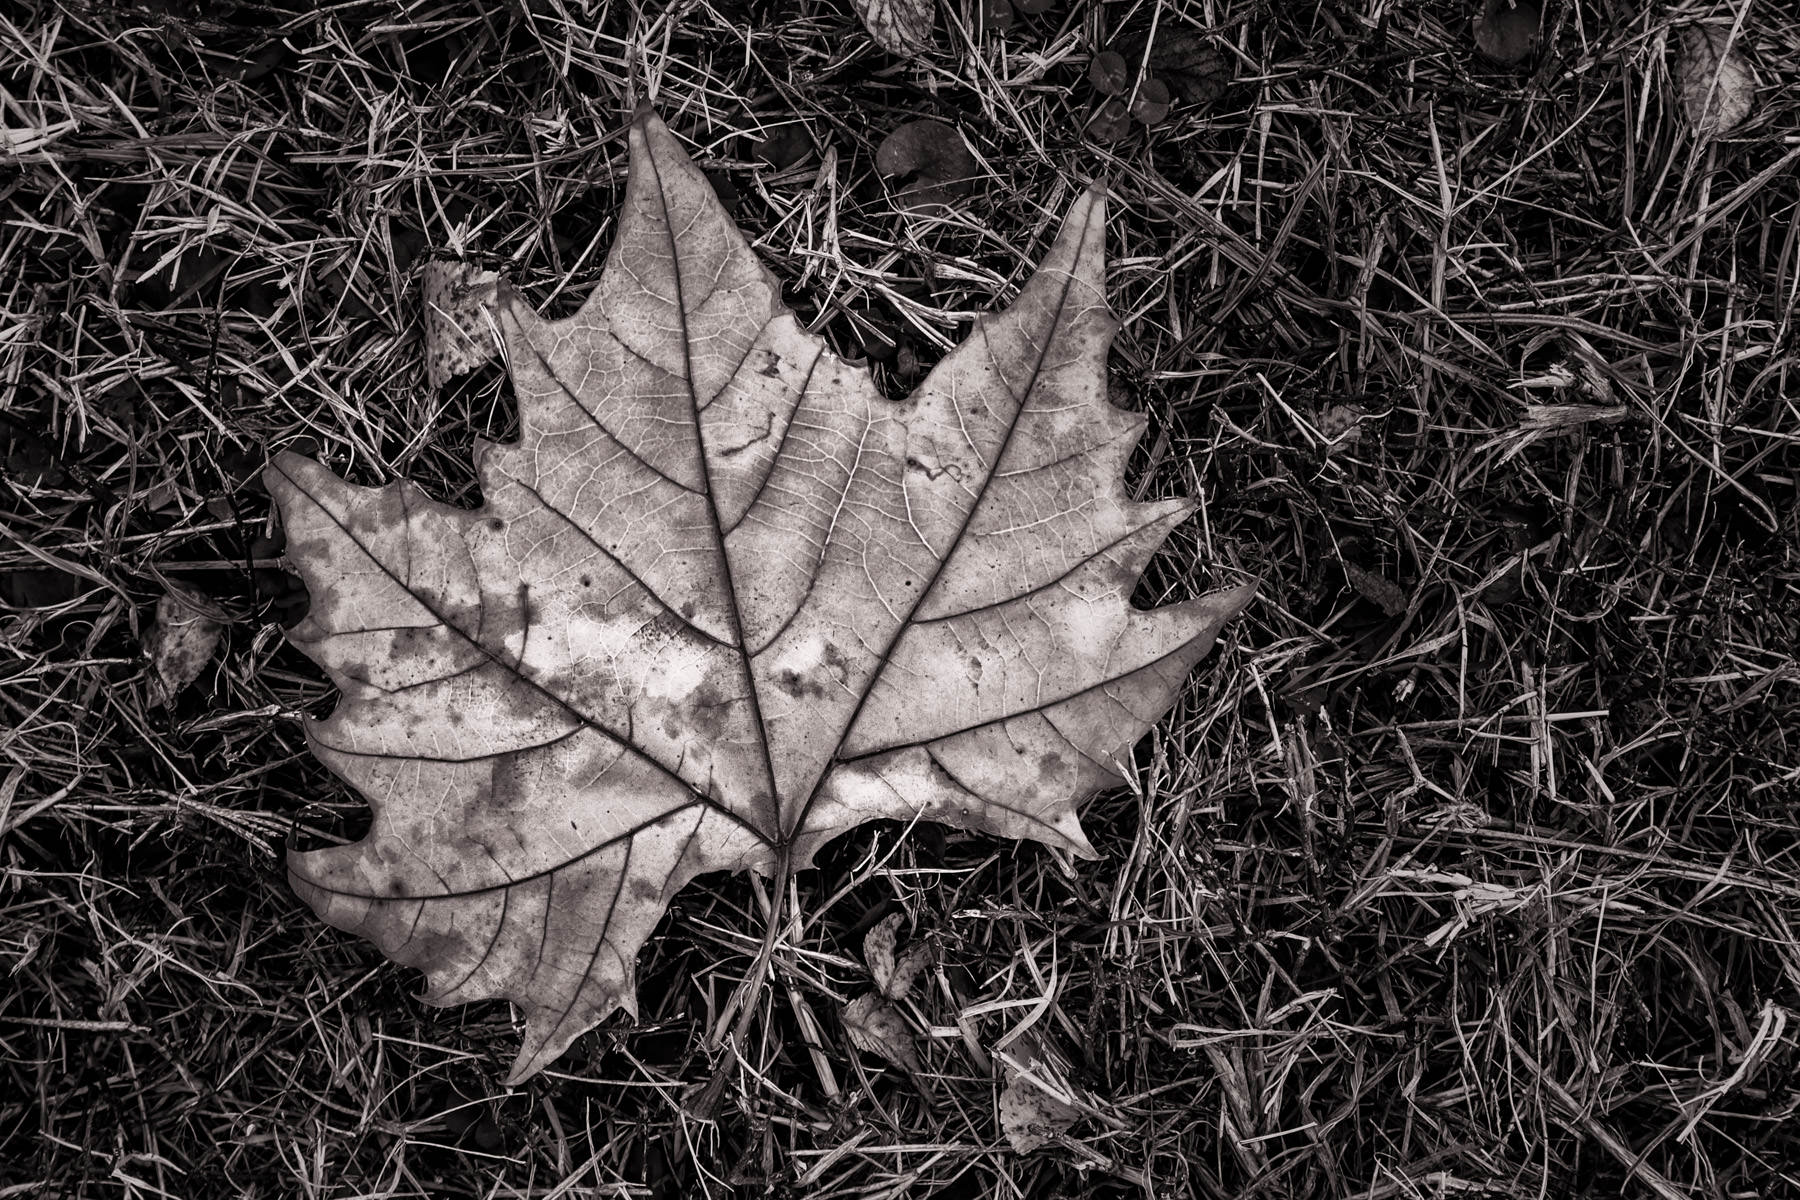 A maple leaf lies on the ground at Richardson, Texas' Breckinridge Park.